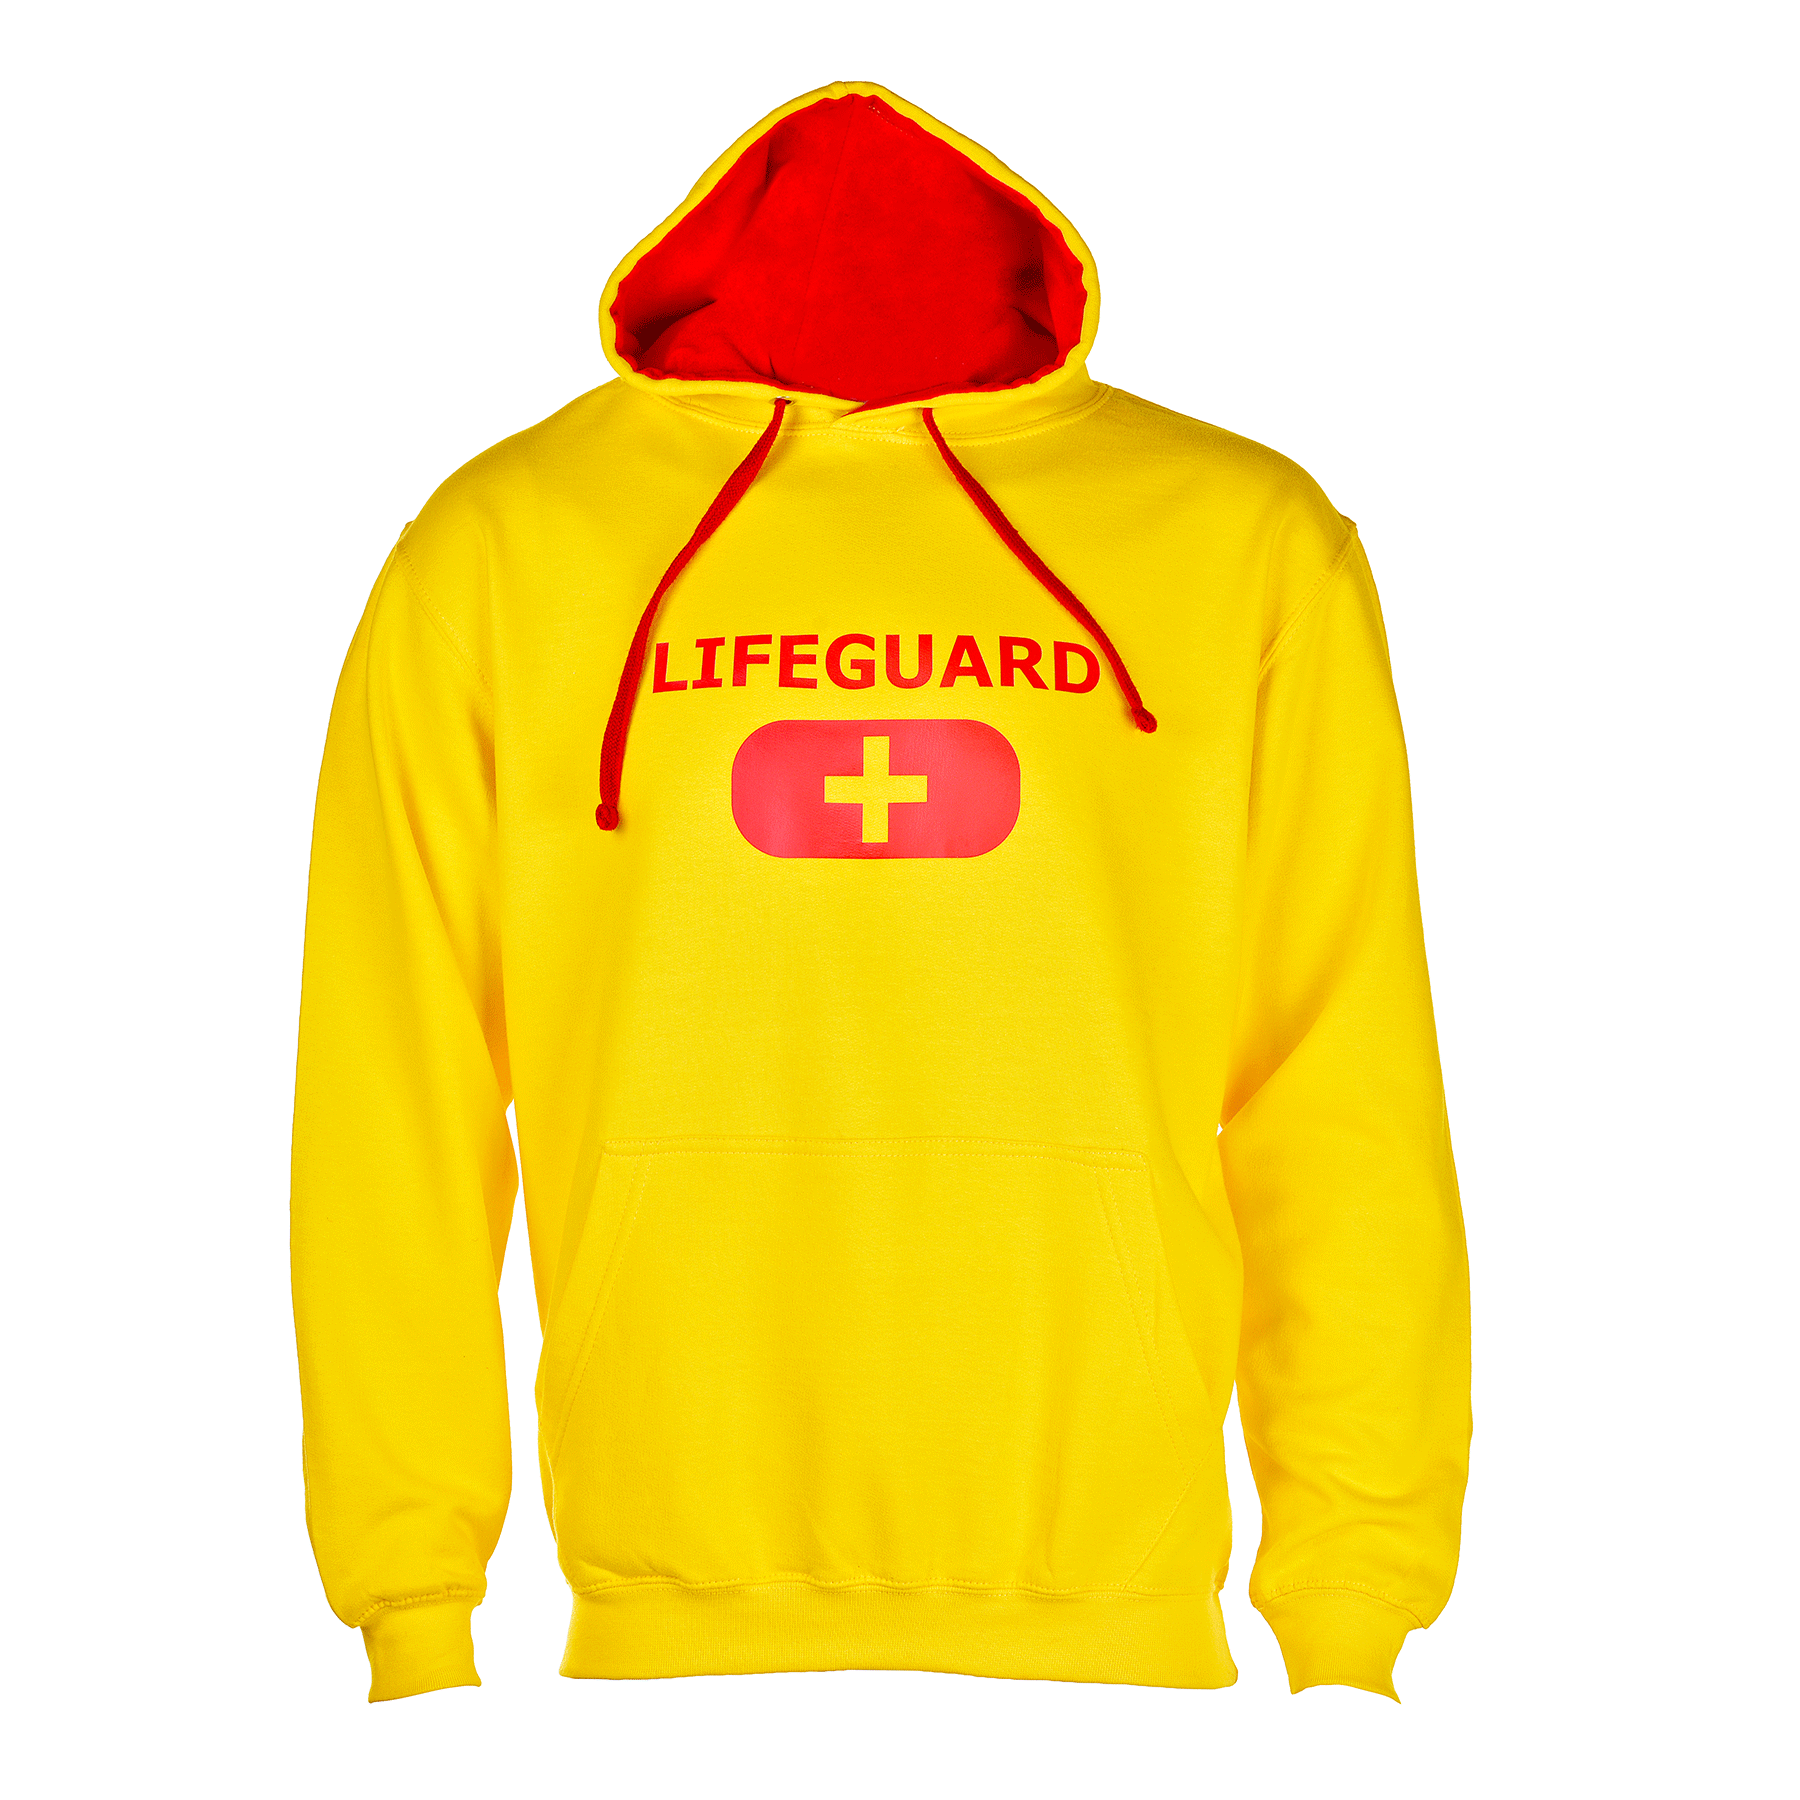 The Lifeguard Contrast Hoodie